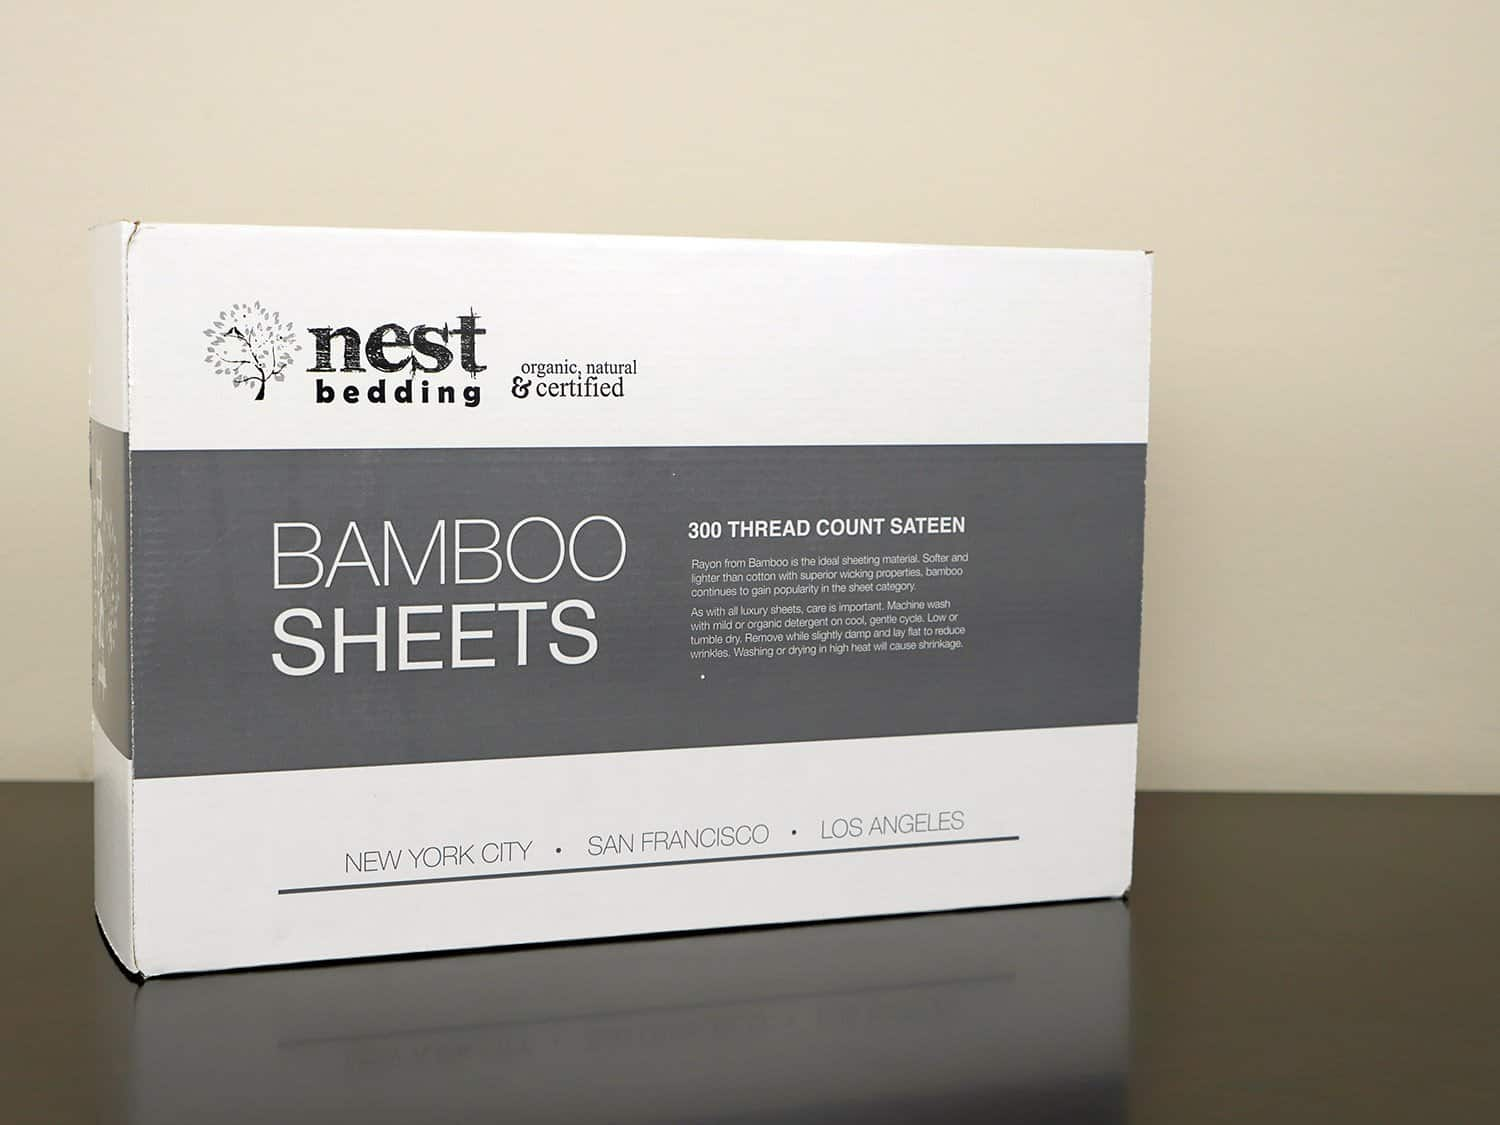 Nest Bedding bamboo sheets